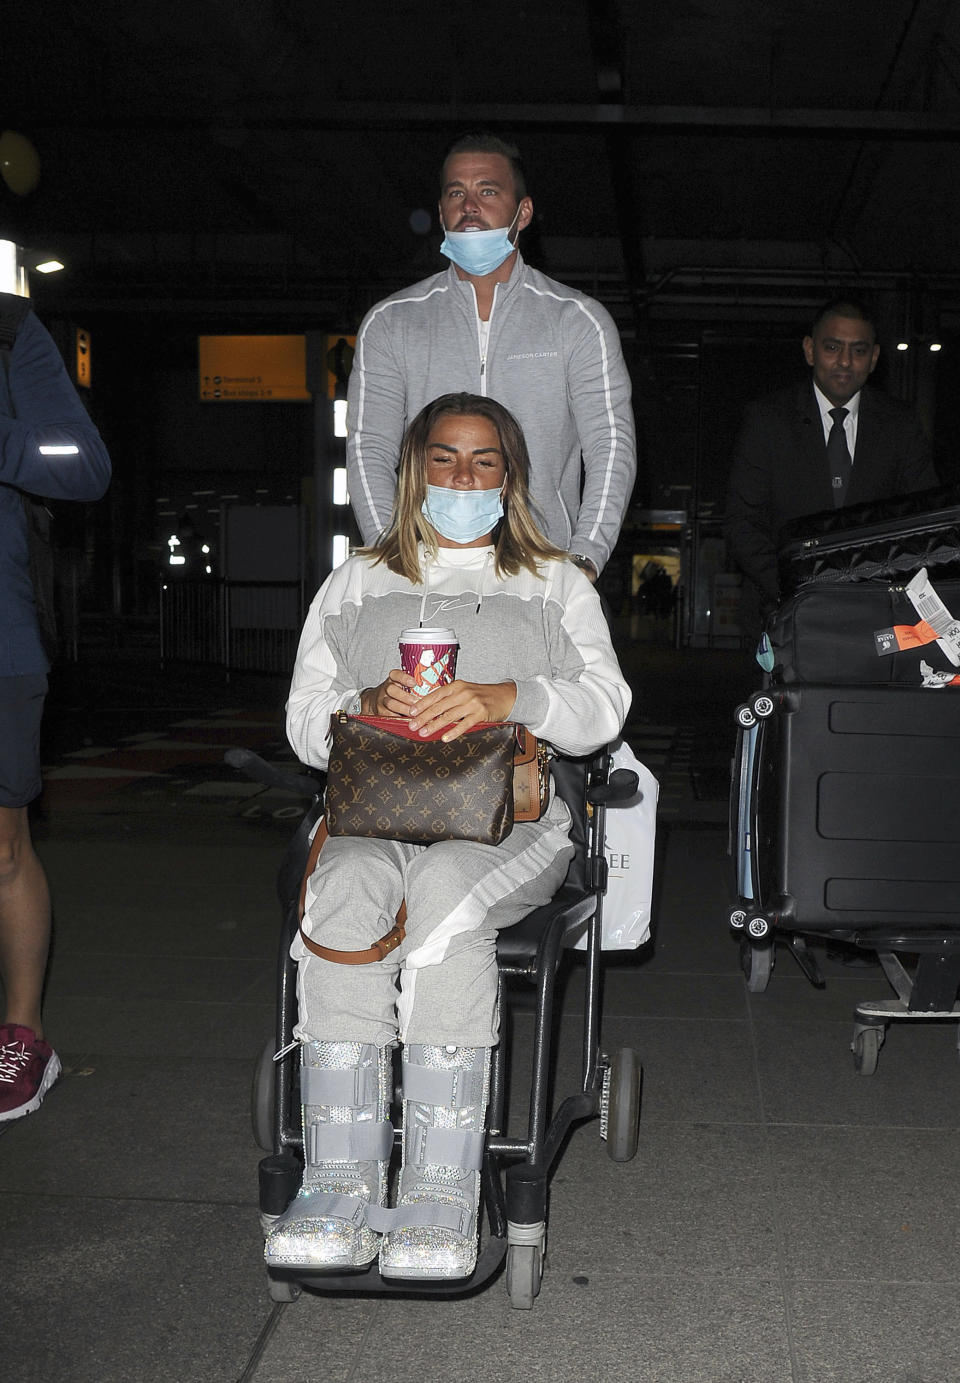 Photo by: zz/KGC-305/STAR MAX/IPx 2020 11/6/20 Katie Price and her boyfriend Carl Woods are seen on November 6, 2020 arriving at Heathrow Airport - returning to England from their holiday in The Maldives. They were not in compliance with strict government guidelines mandated during the worldwide coronavirus pandemic as they both were wearing their face masks improperly as both had their noses exposed. (London, England, UK)